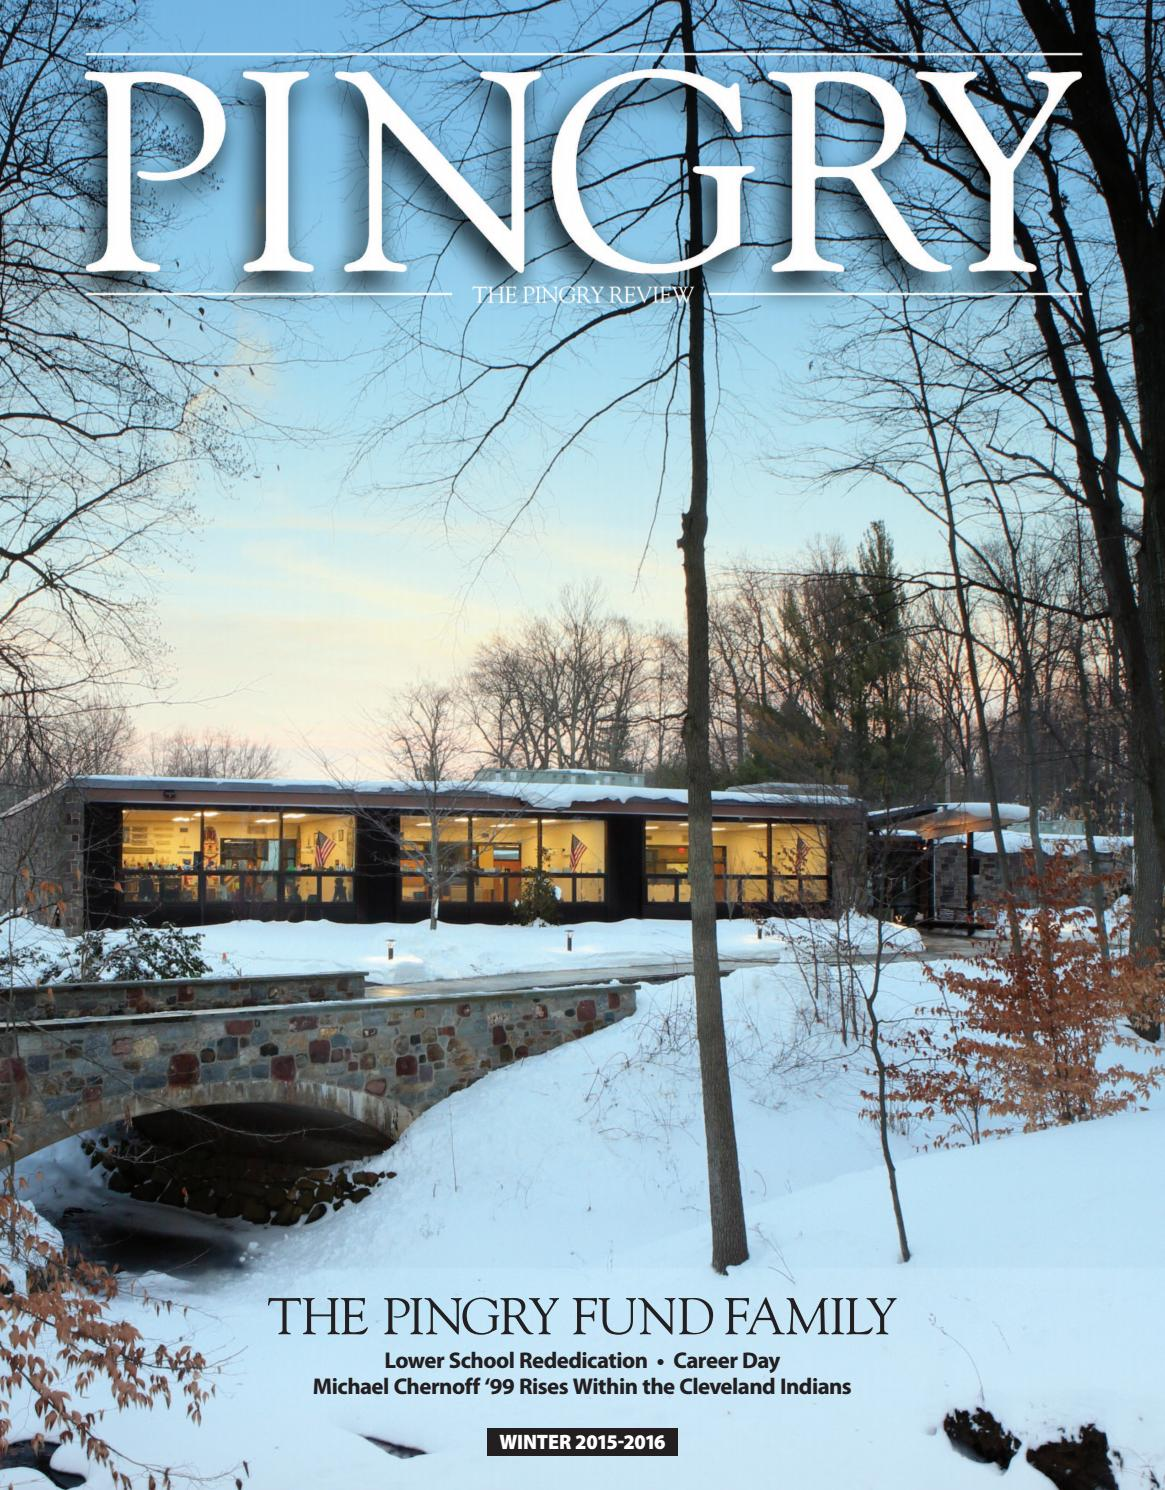 Pingry Review, Winter 2015-2016 by The Pingry School - issuu